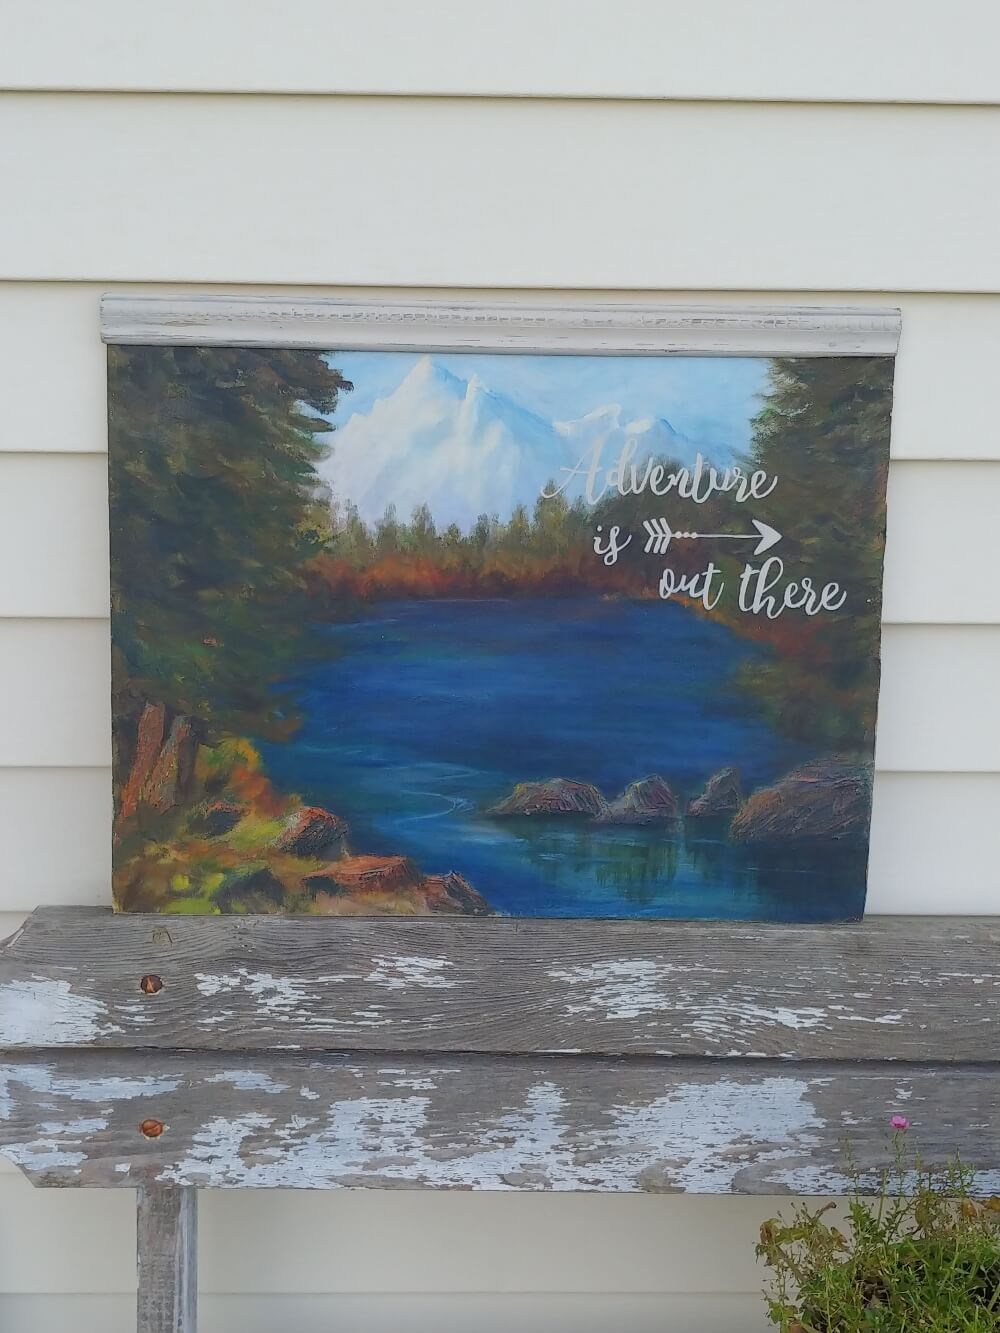 DIY Upcycled Thrift Store Painting - 7 Days of Thrift Shop Flips - Day Three